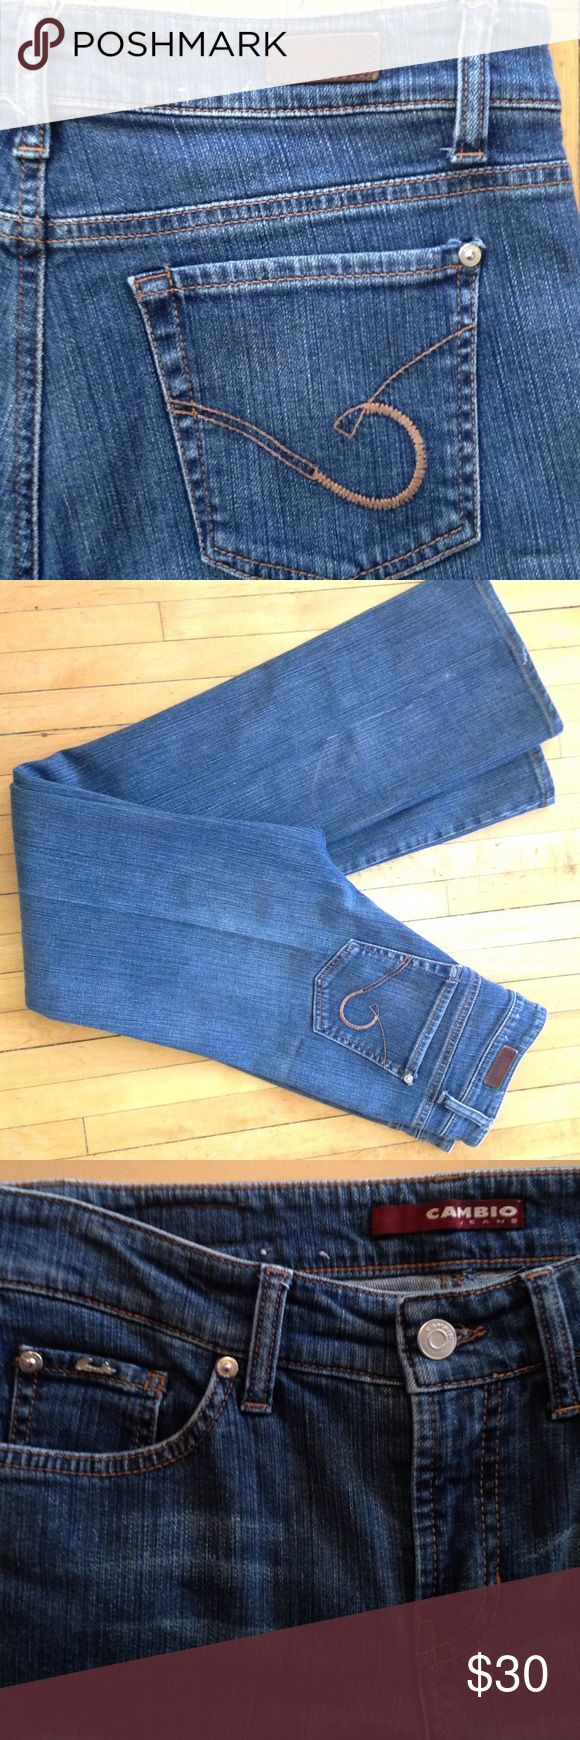 "Cambio Norah Jeans Cambio Jeans mid wash ""Norah"" straight leg. Excellent quality and condition!  Size 6. Inseam 32"".  Rise 8"". Waist 14.5"" across Cambio Jeans Jeans Straight Leg"